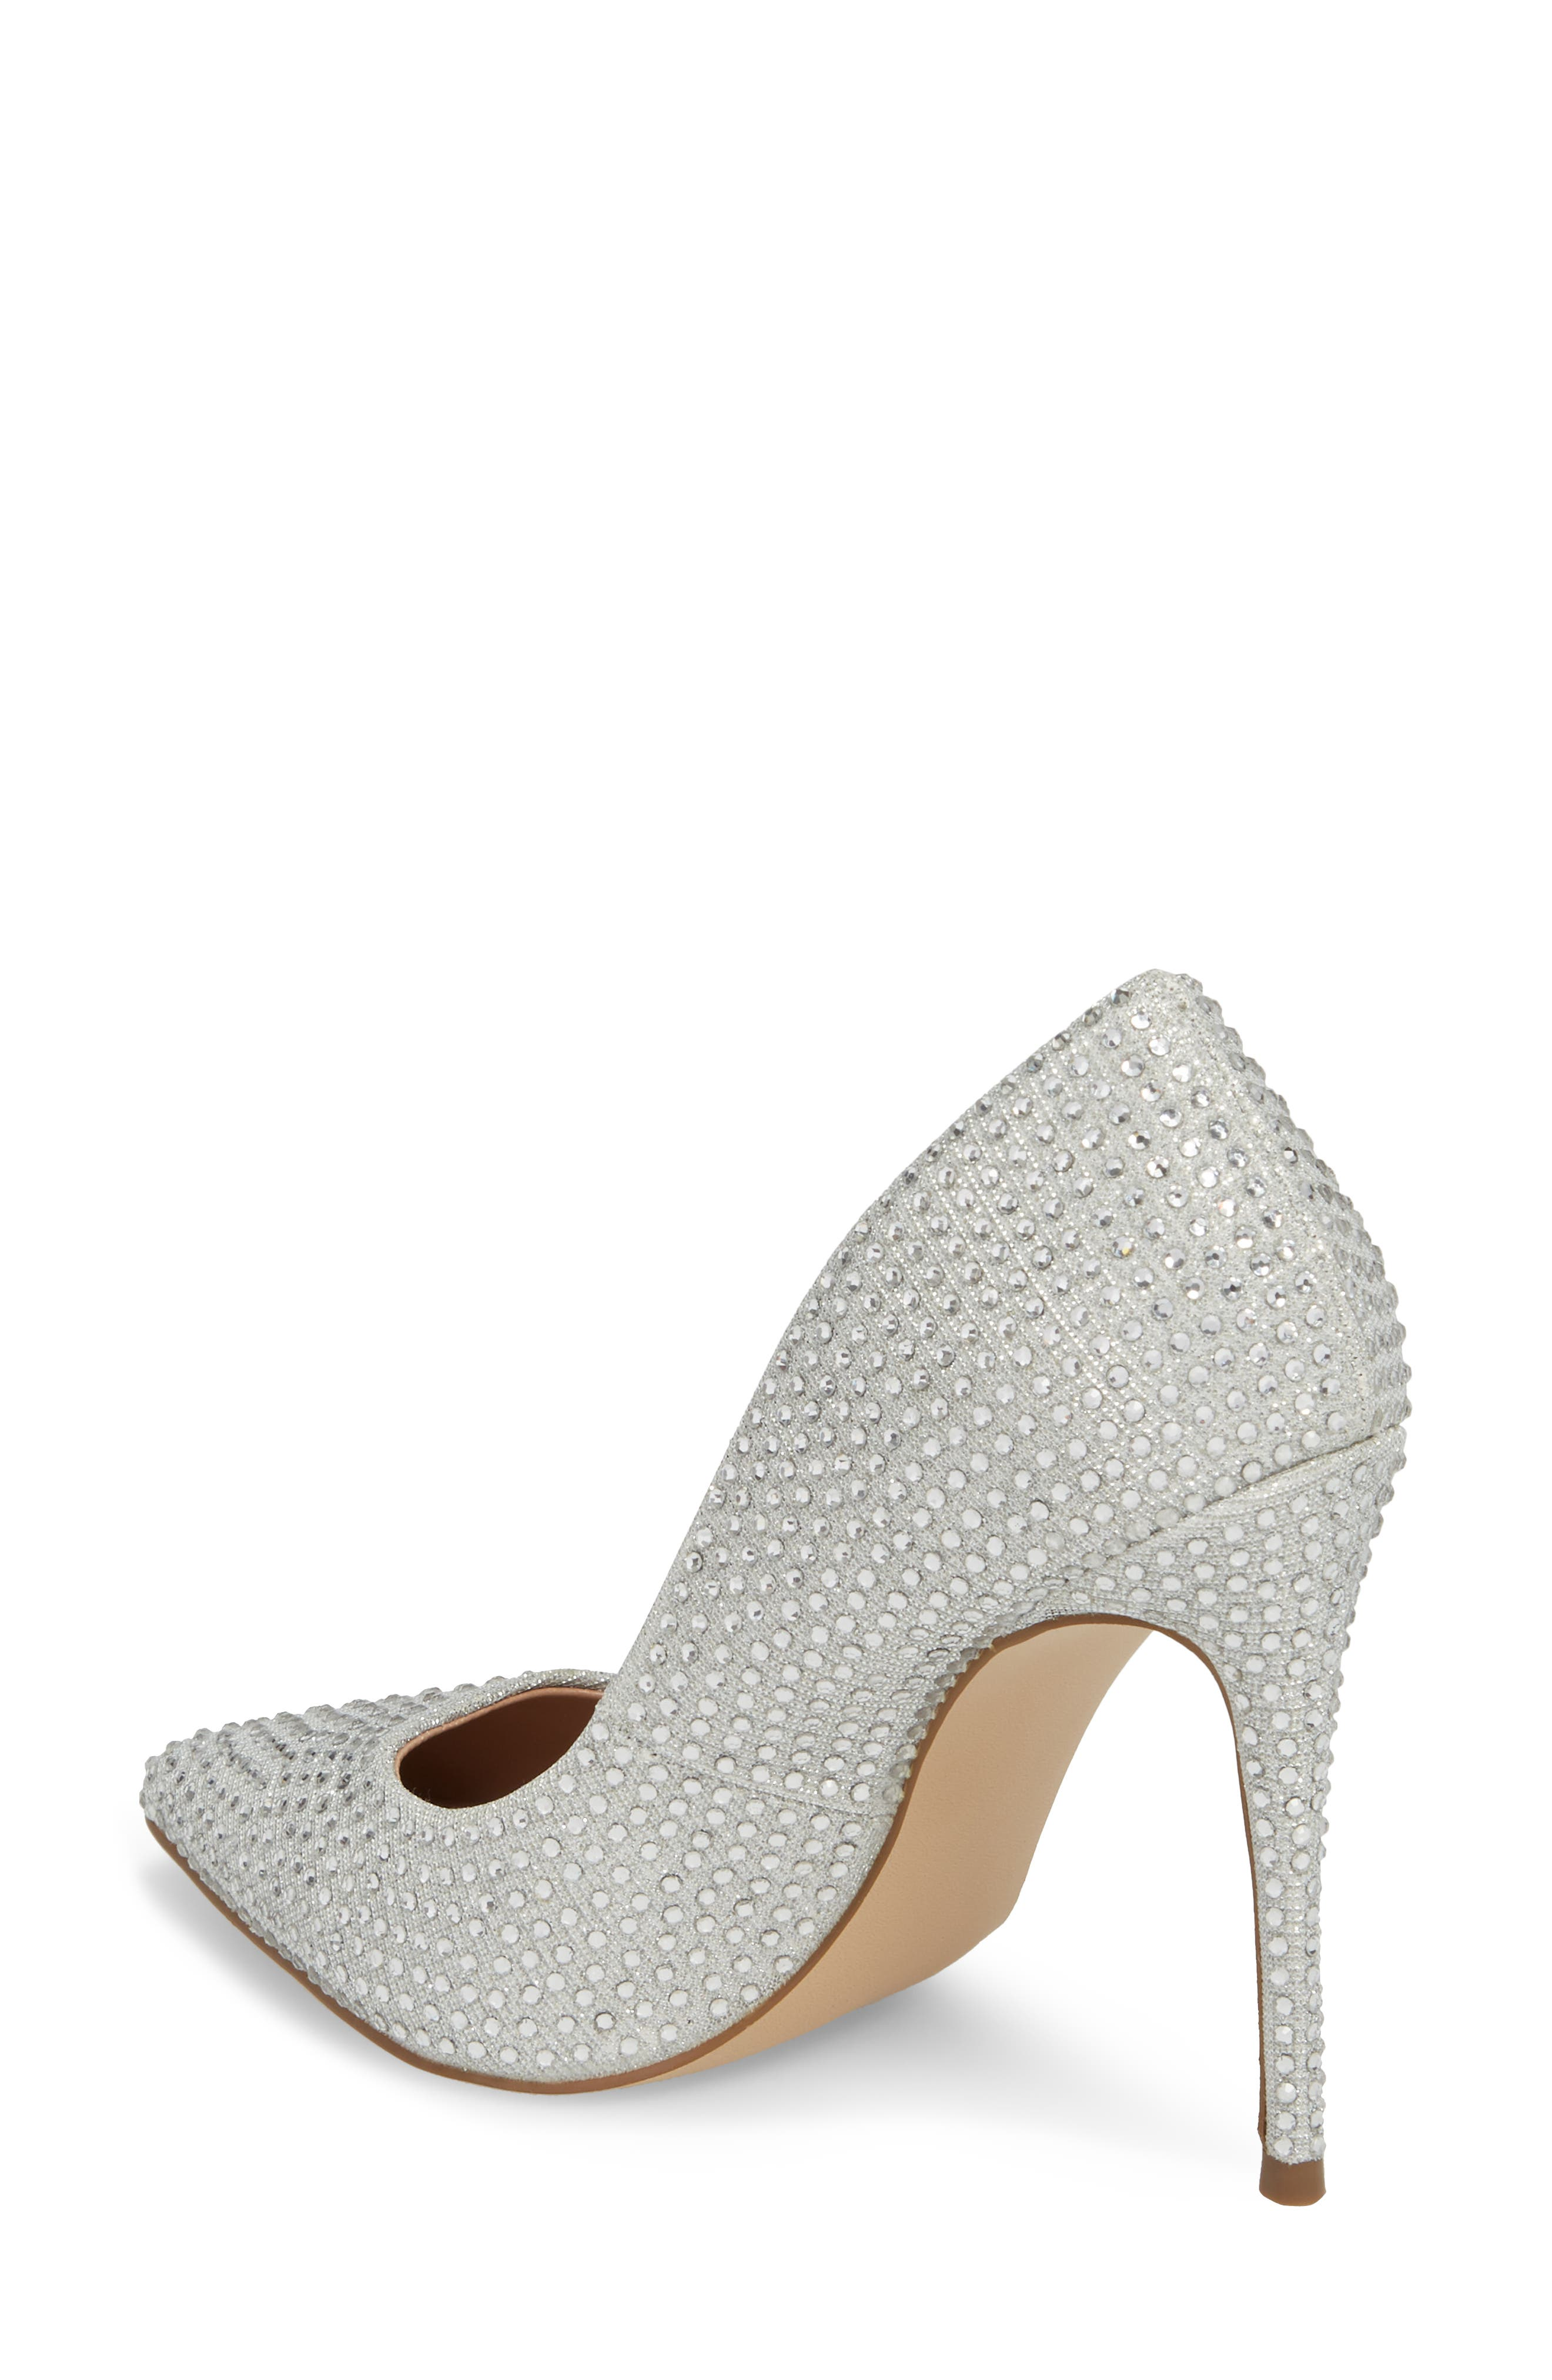 Daisie Pointy-Toe Pump,                             Alternate thumbnail 2, color,                             SILVER